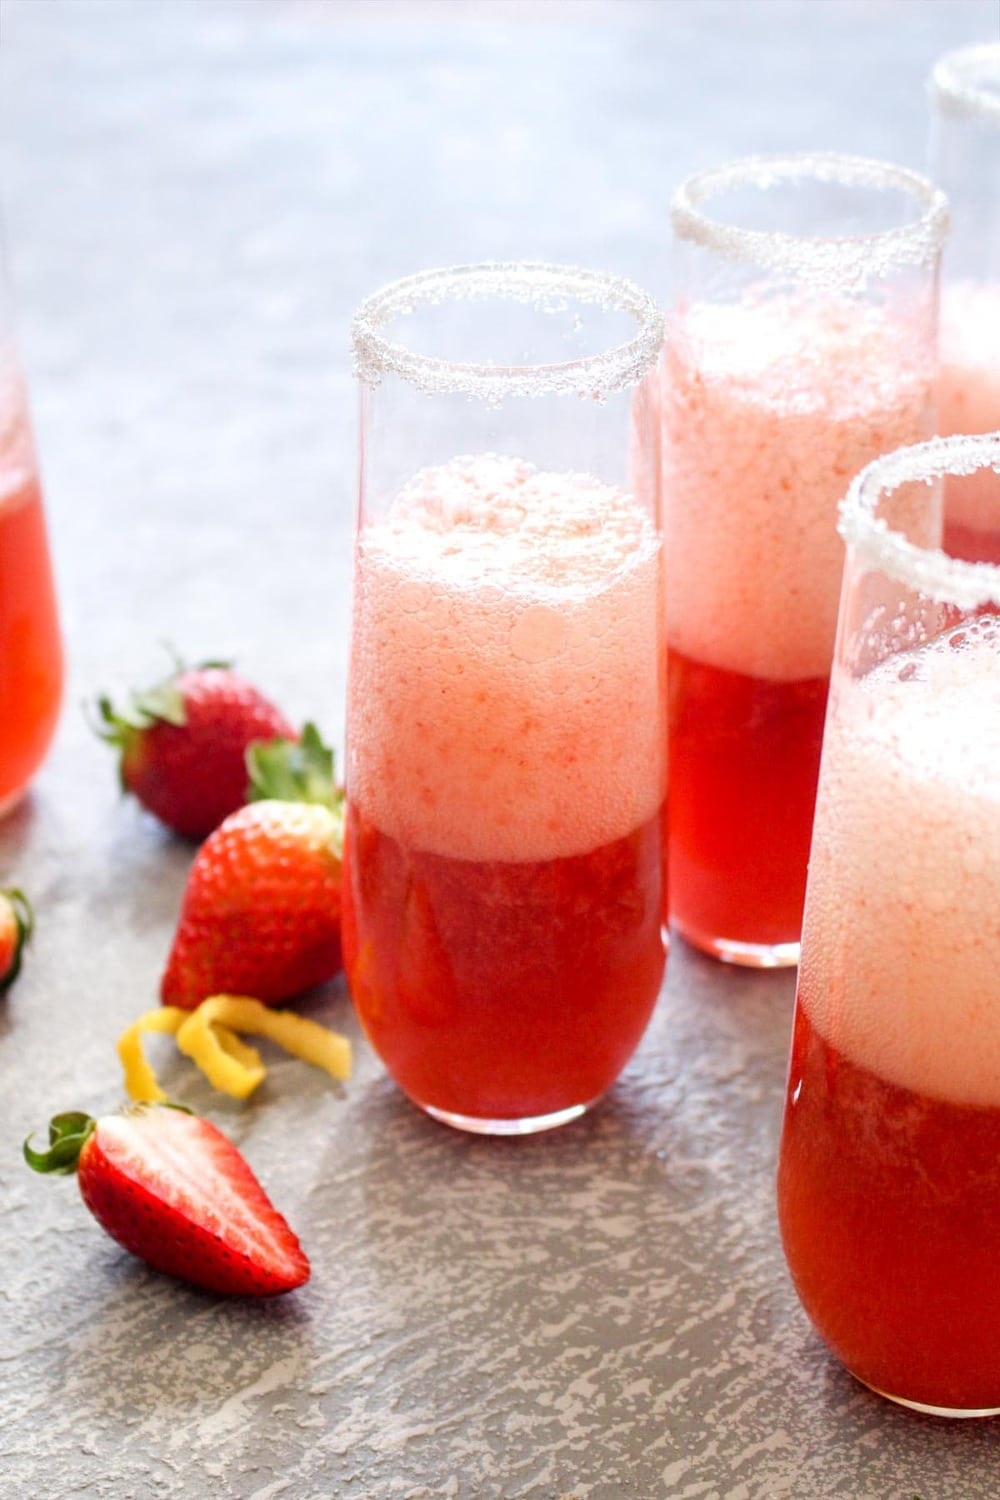 This quick and easyStrawberry French 75 cocktail is a fruity spin on the lemon flavored classic. This light drink recipe uses just 3 ingredients and is sweetened with fruit only! Its the perfect bubbly spring beverage. | CatchingSeeds.com